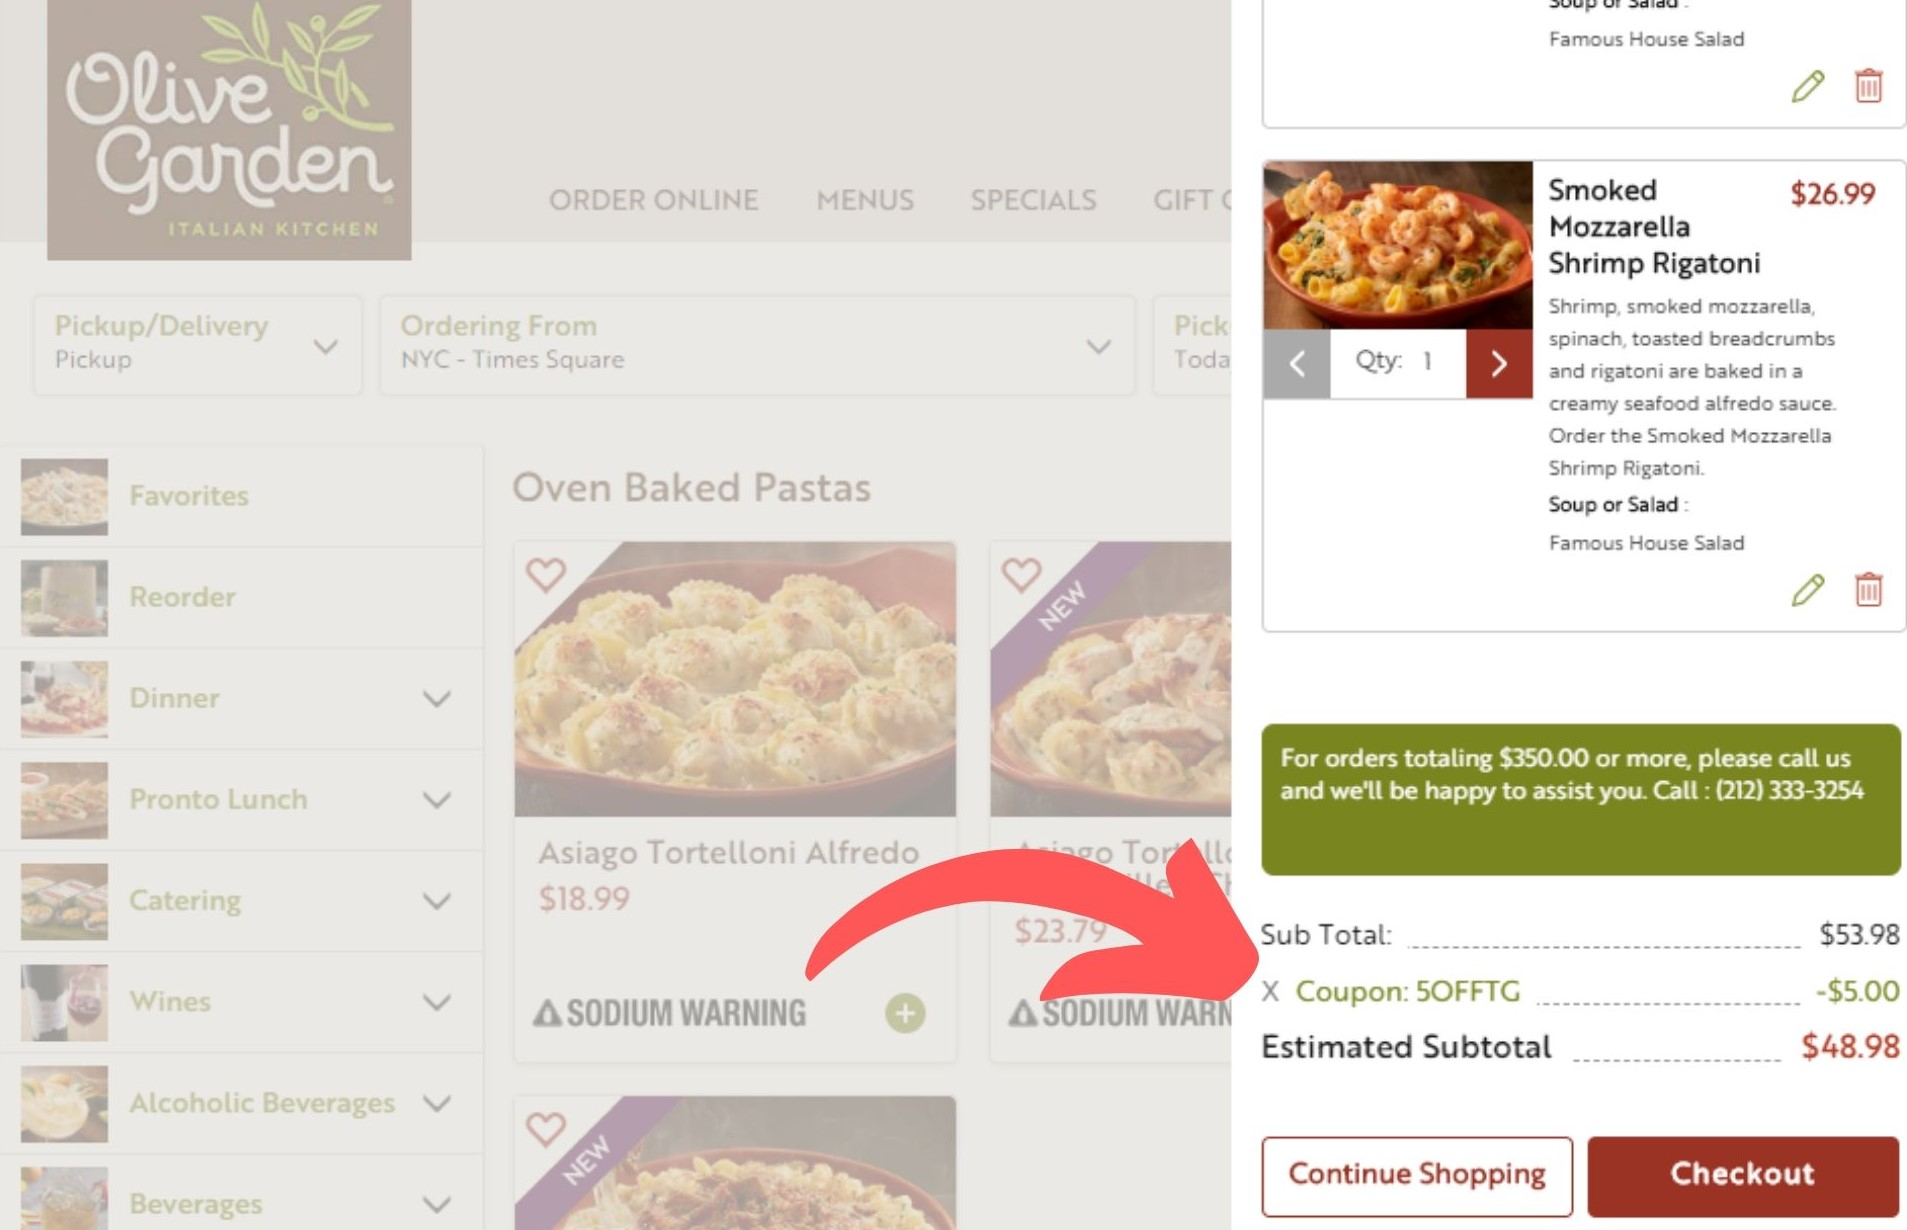 5 Off Olive Garden Coupons Coupon Codes December 2020